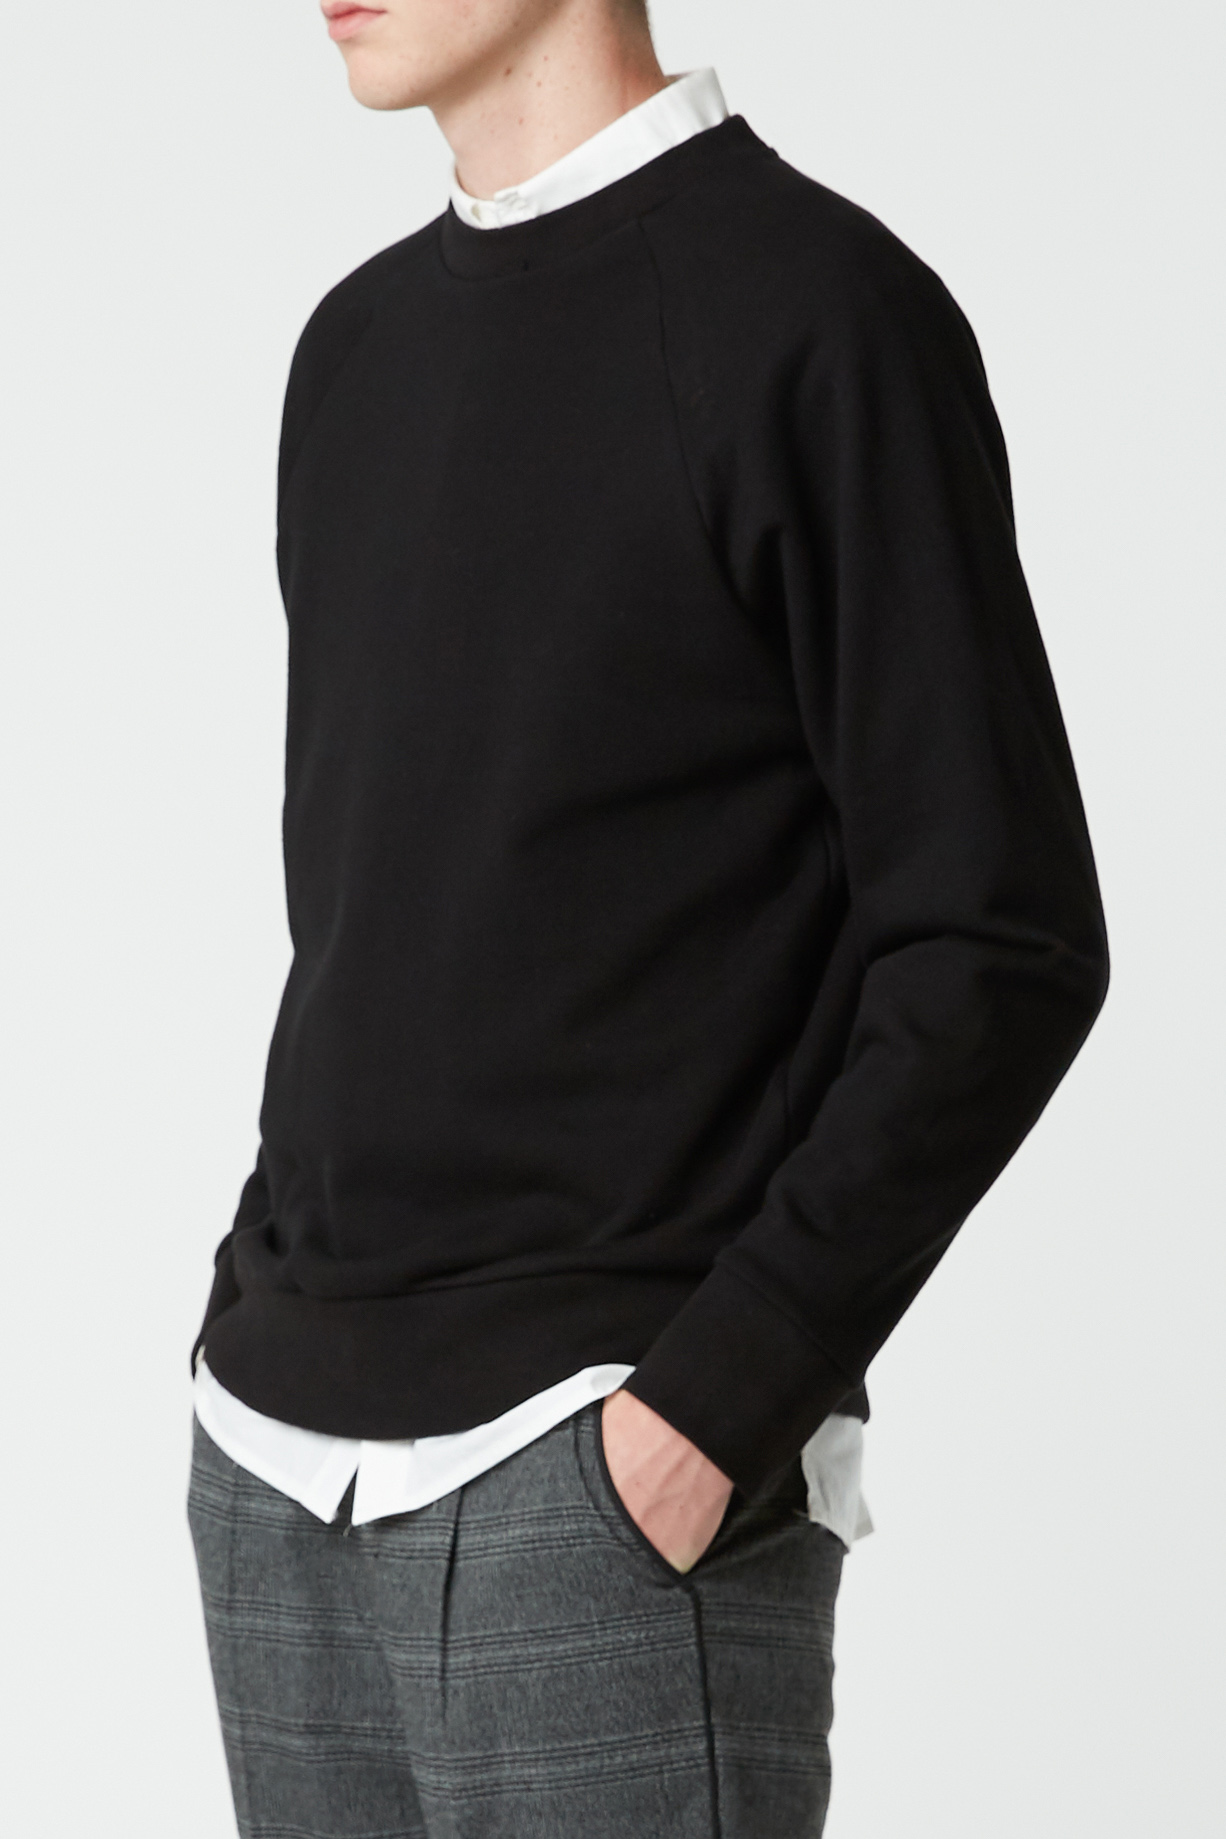 Sweatshirt 2474 Black 1